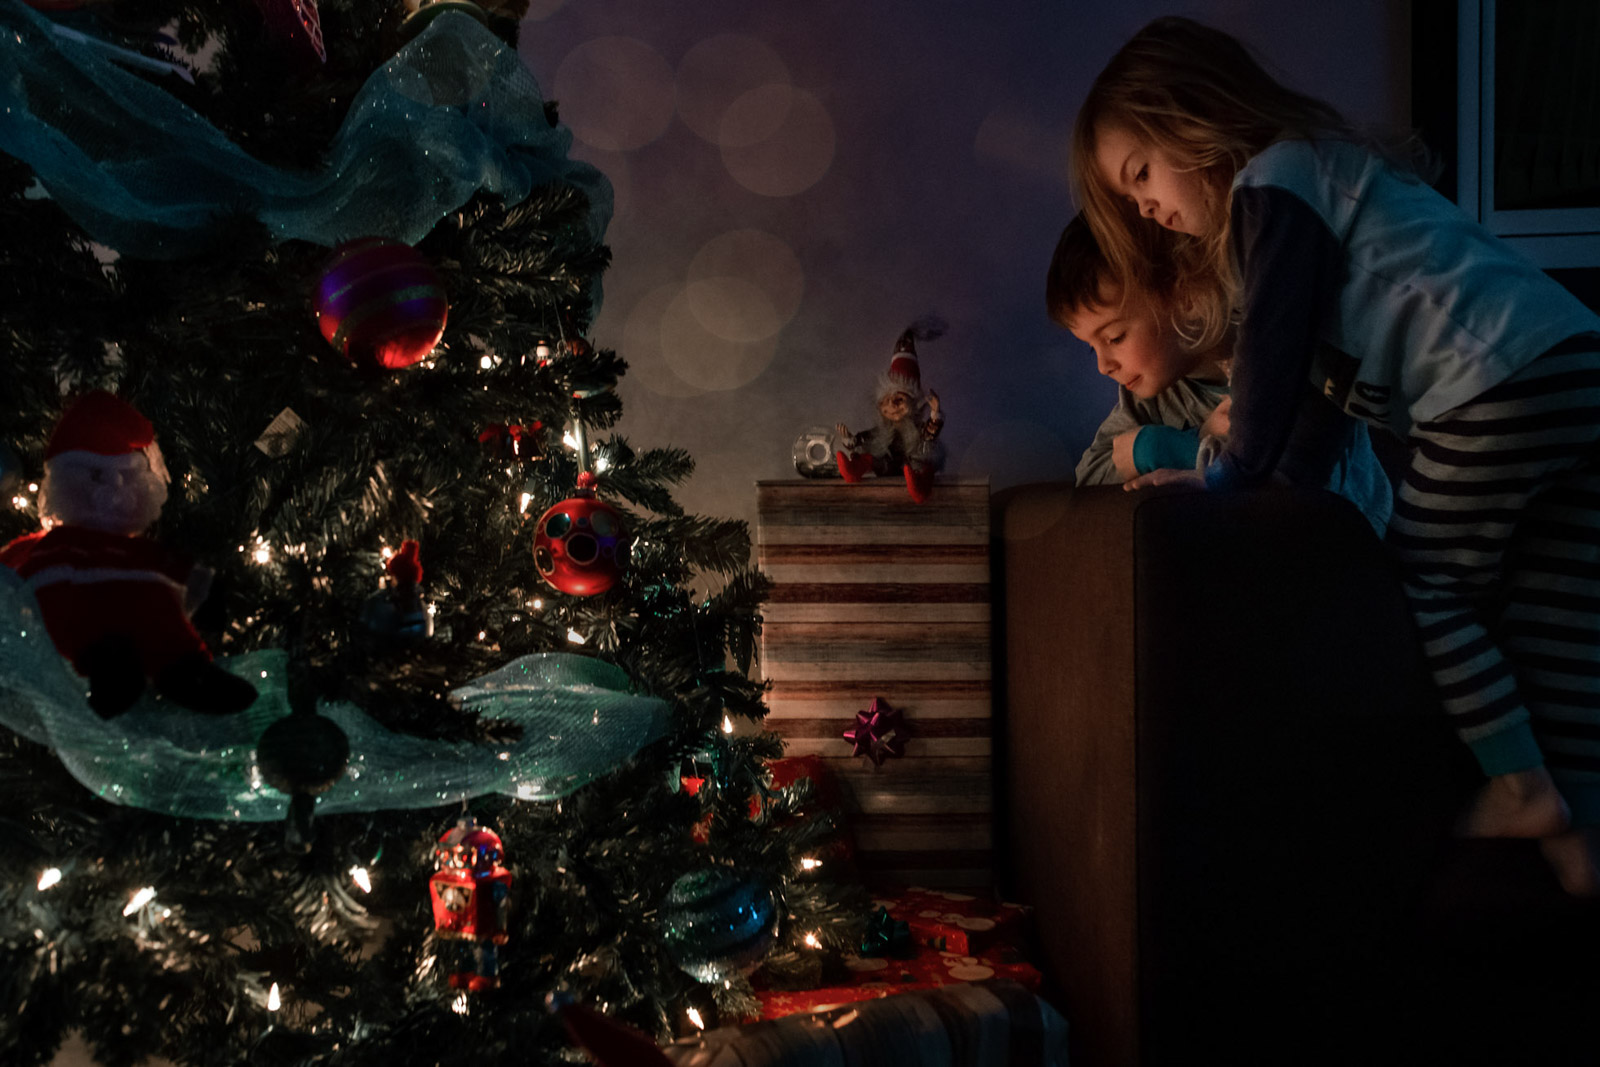 elf job done christmas gift tree kids discover morning annick simon paradis photographe quebec documentaire famille